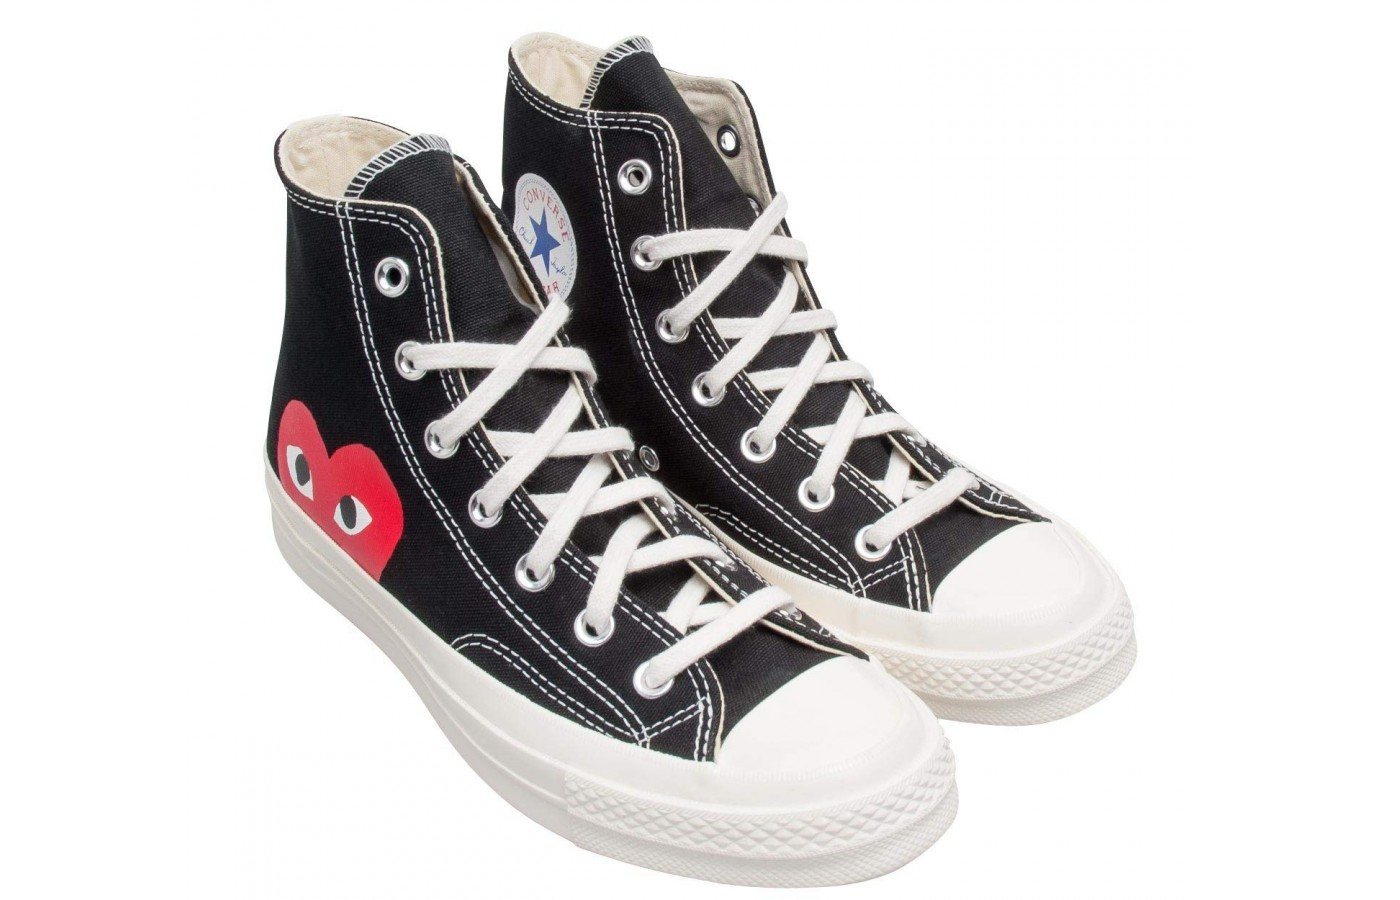 133acaa01870 Converse Comme Des Garcons Play Reviewed. Side  Angle  Back